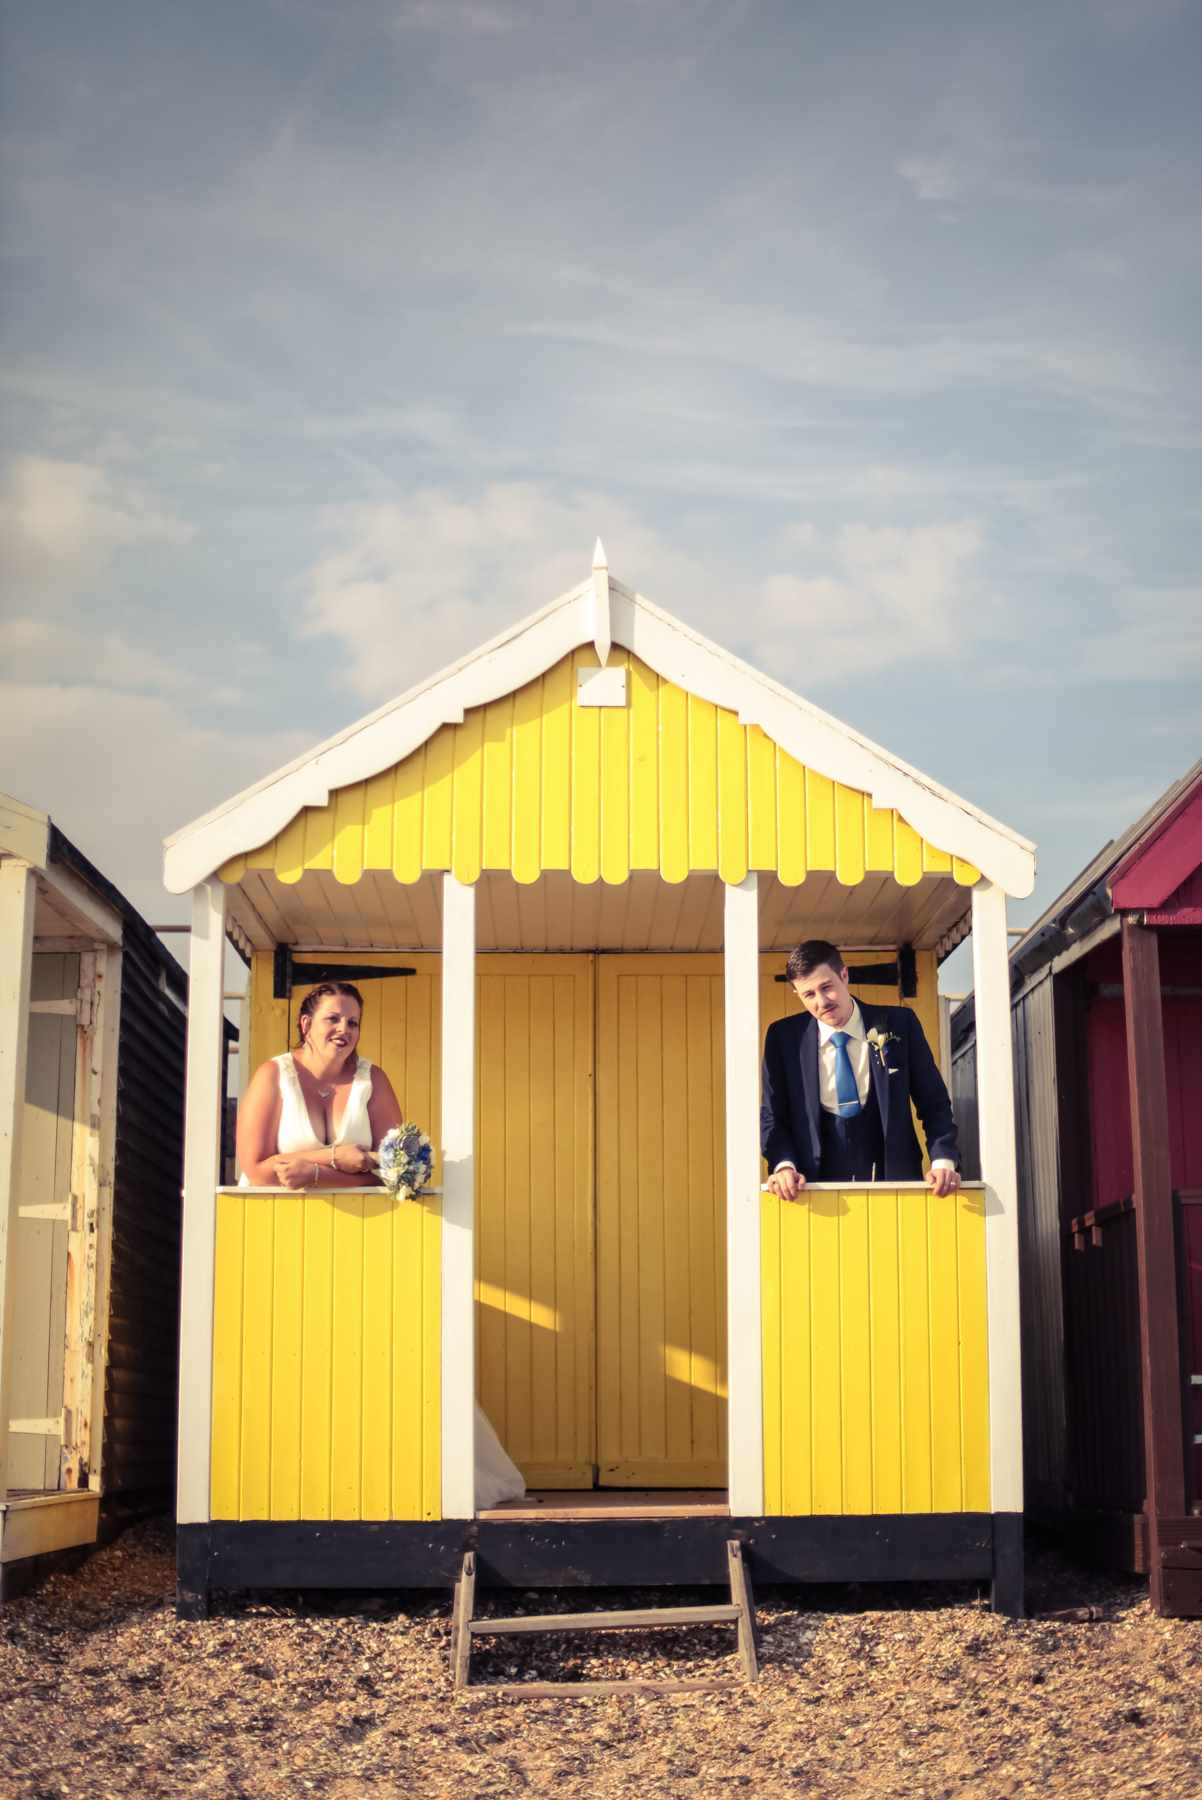 Real wedding in Essex. A couple stand in a beach hut. Wedding Photography. your perfect wedding photographer.